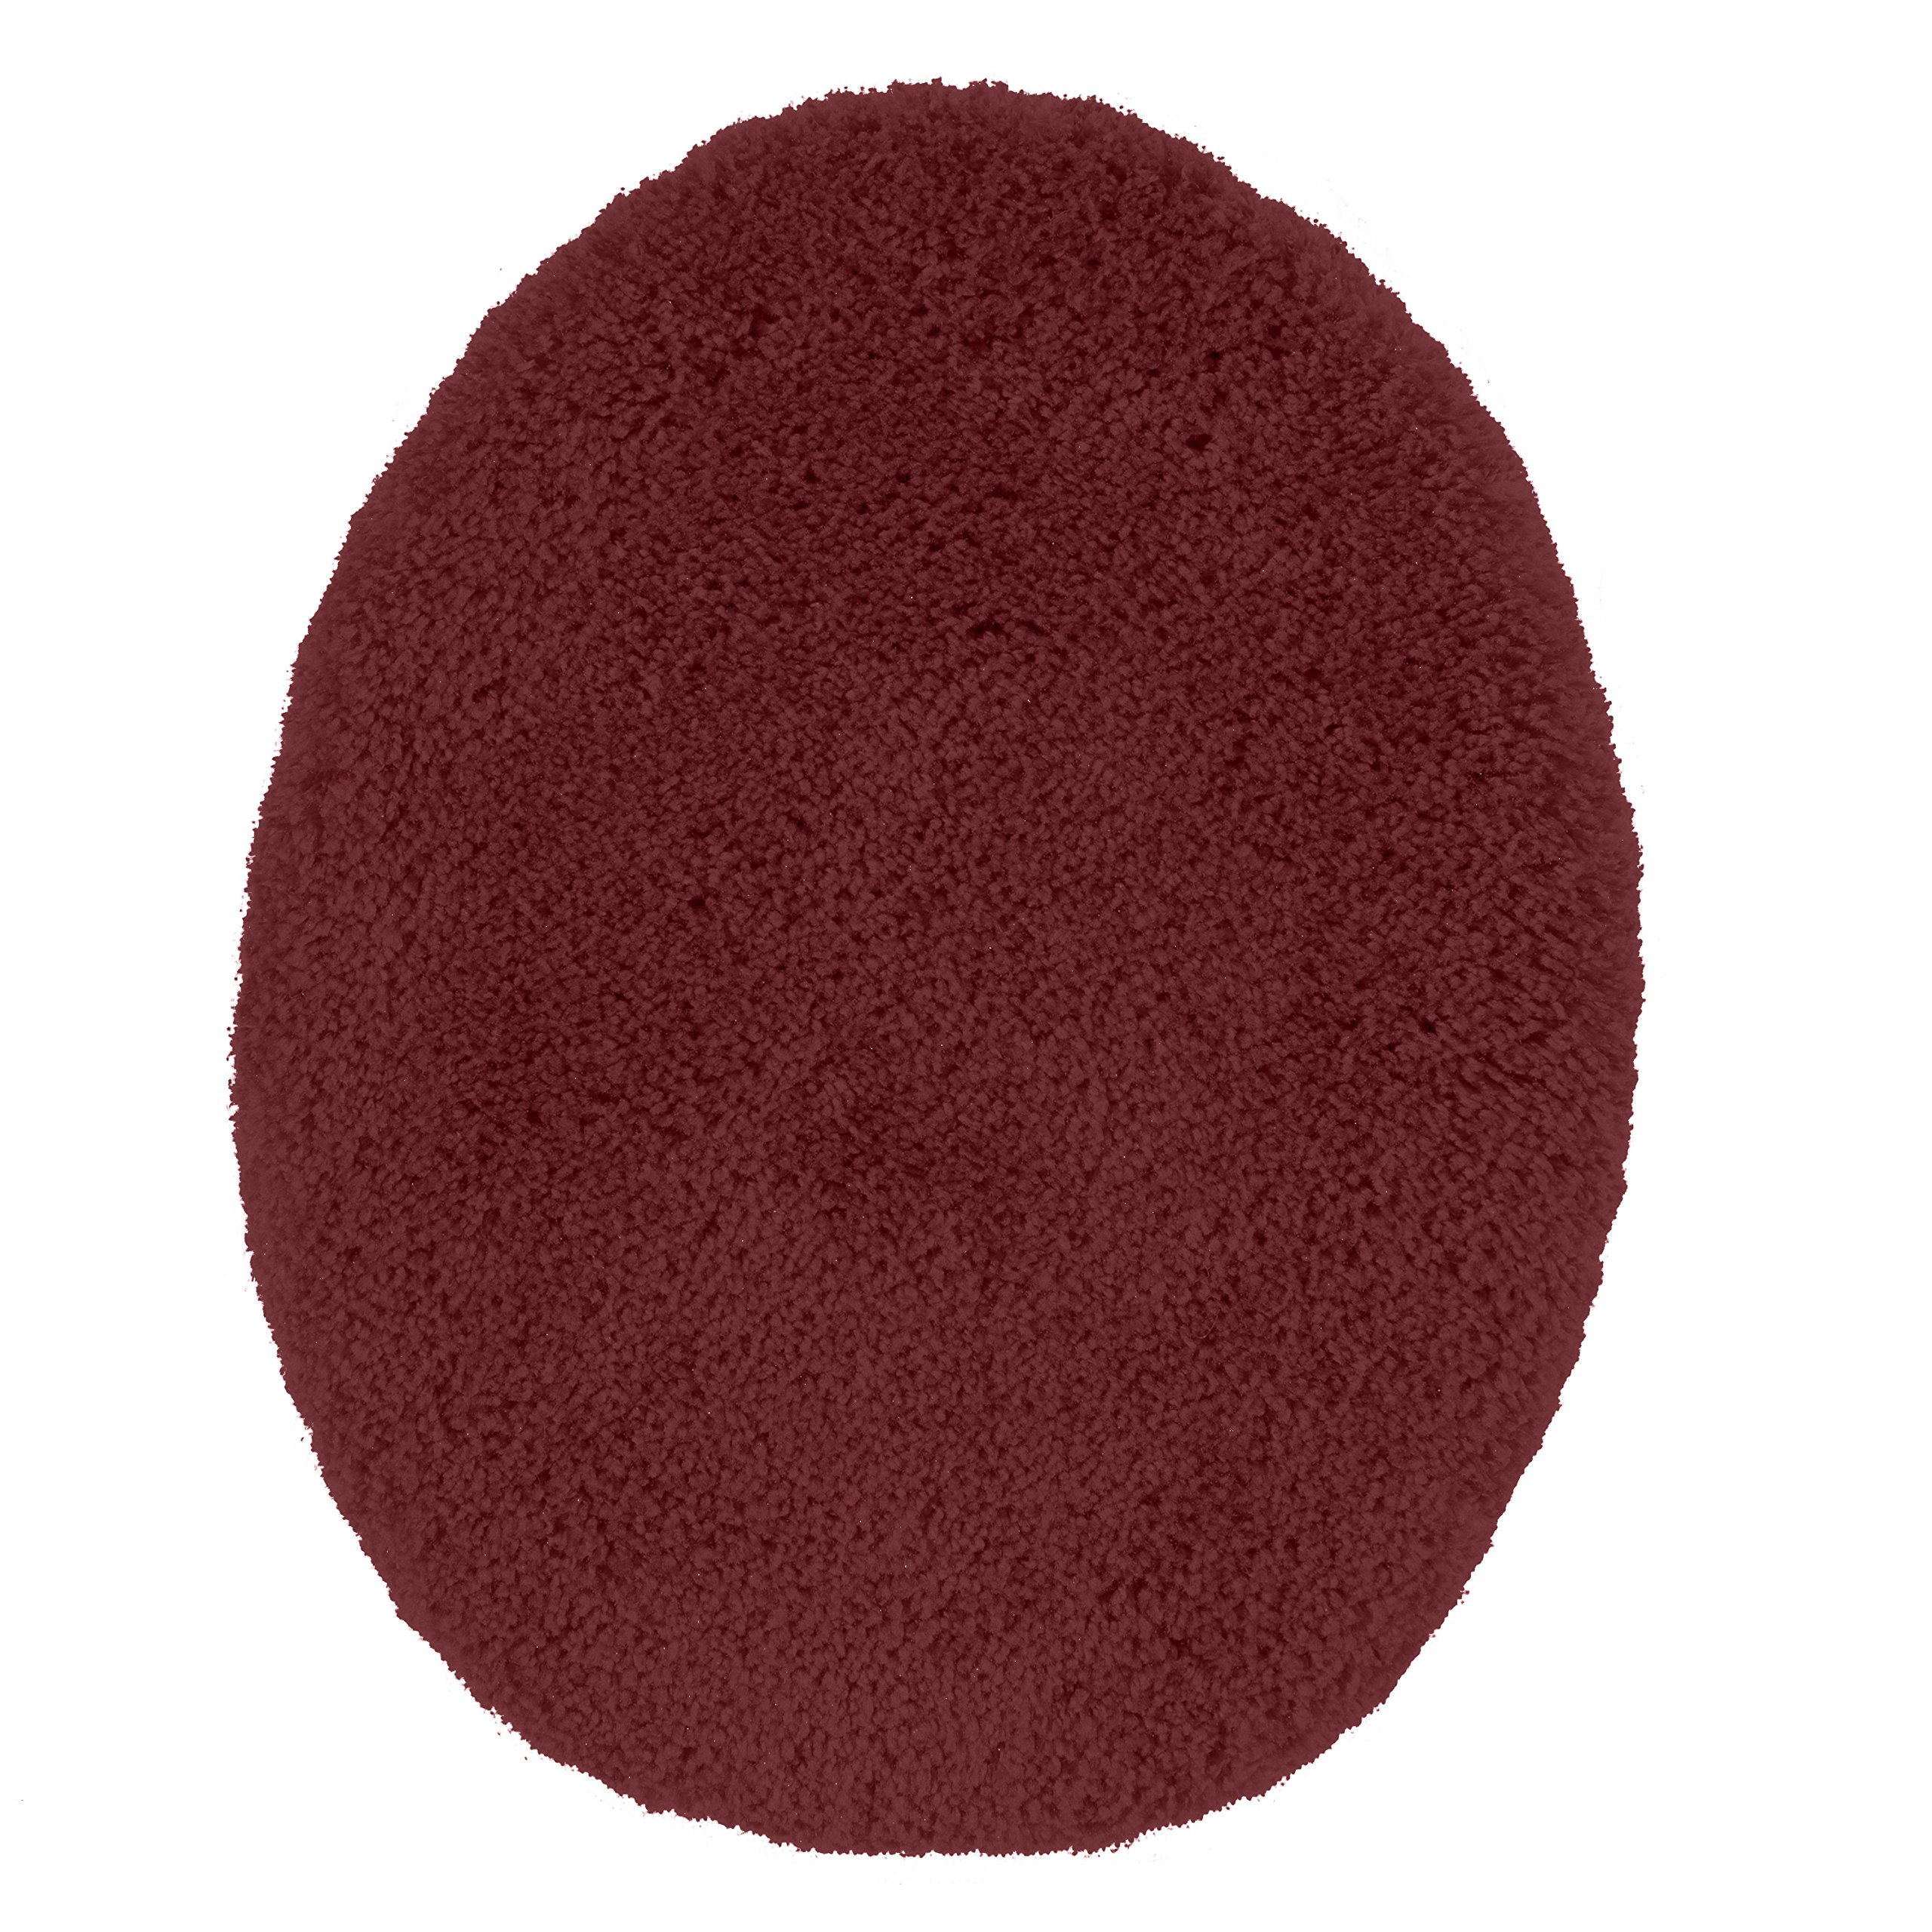 Maples Rugs Toilet Seat Cover Cloud Bath Washable Standard Lid [Made in USA] for Bathroom, Crimson Victory